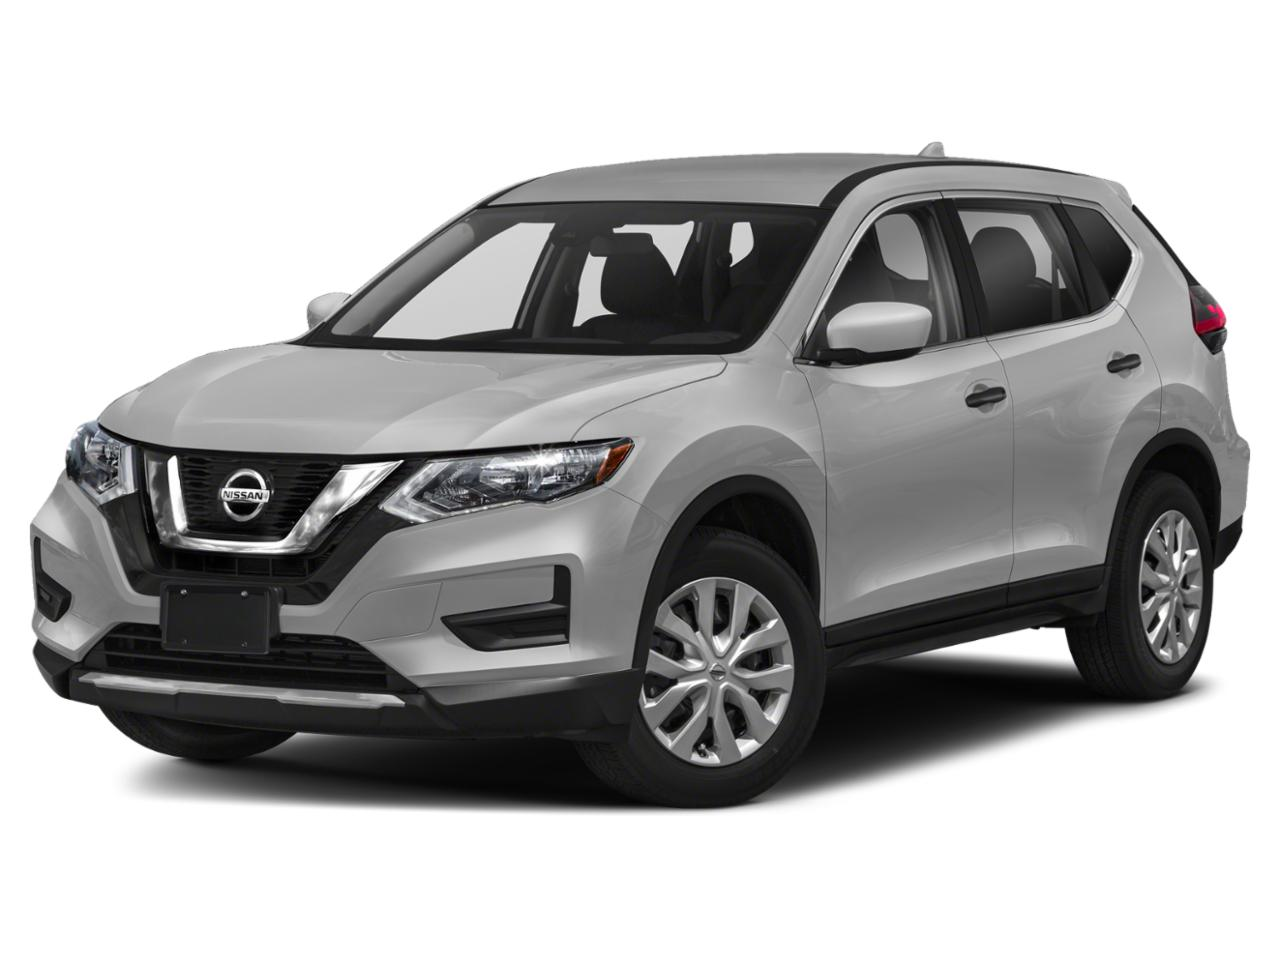 Brilliant Silver Metallic 2020 Nissan Rogue S SUV Neptune NJ